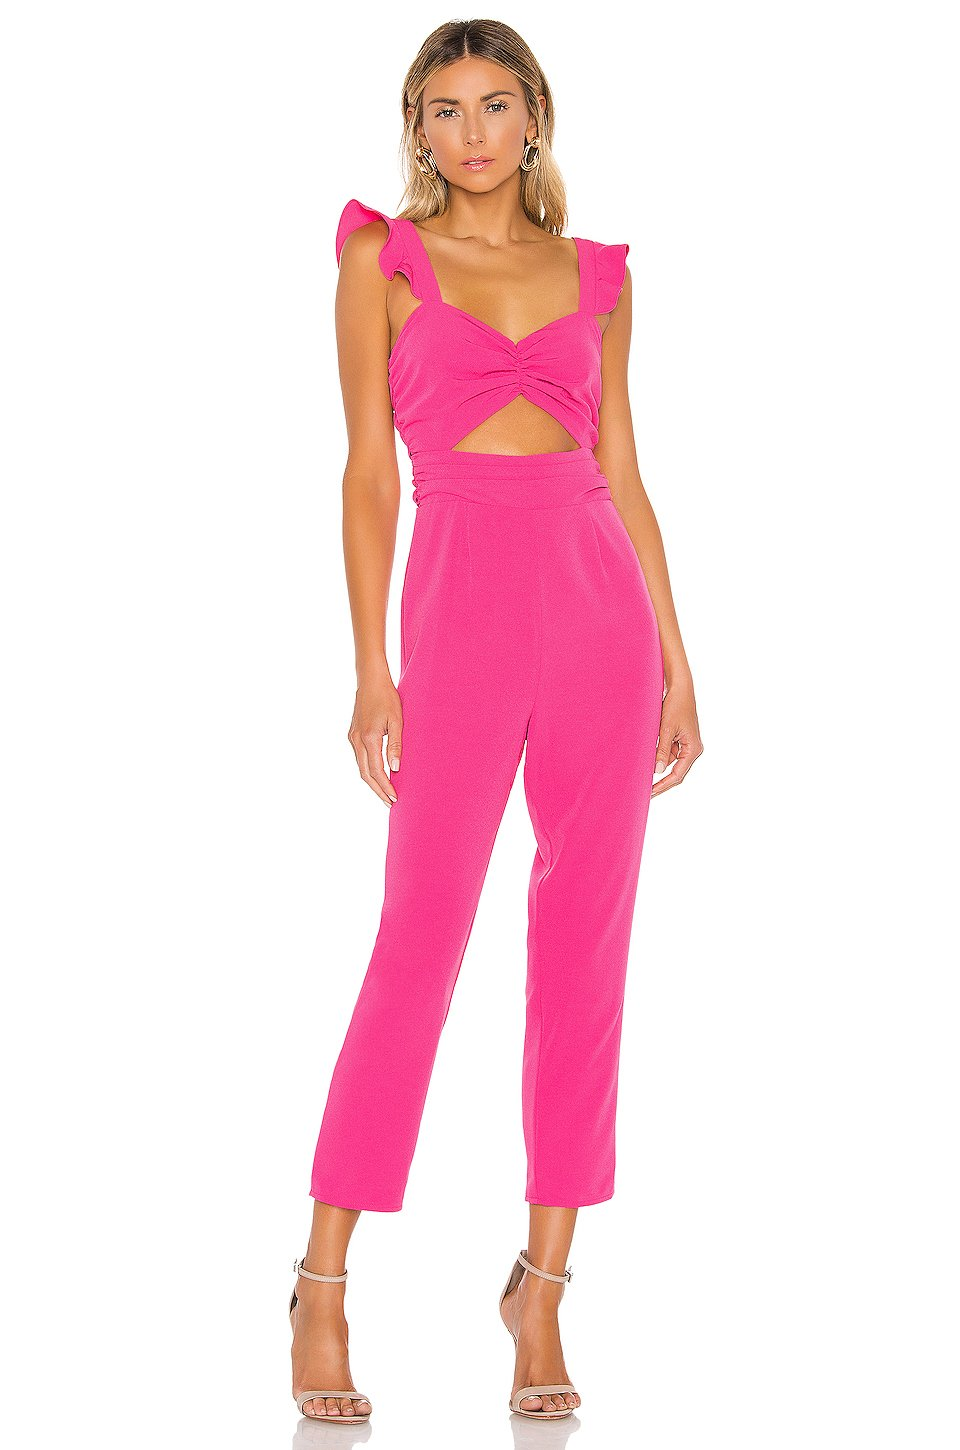 Knox Jumpsuit in Hot Pink